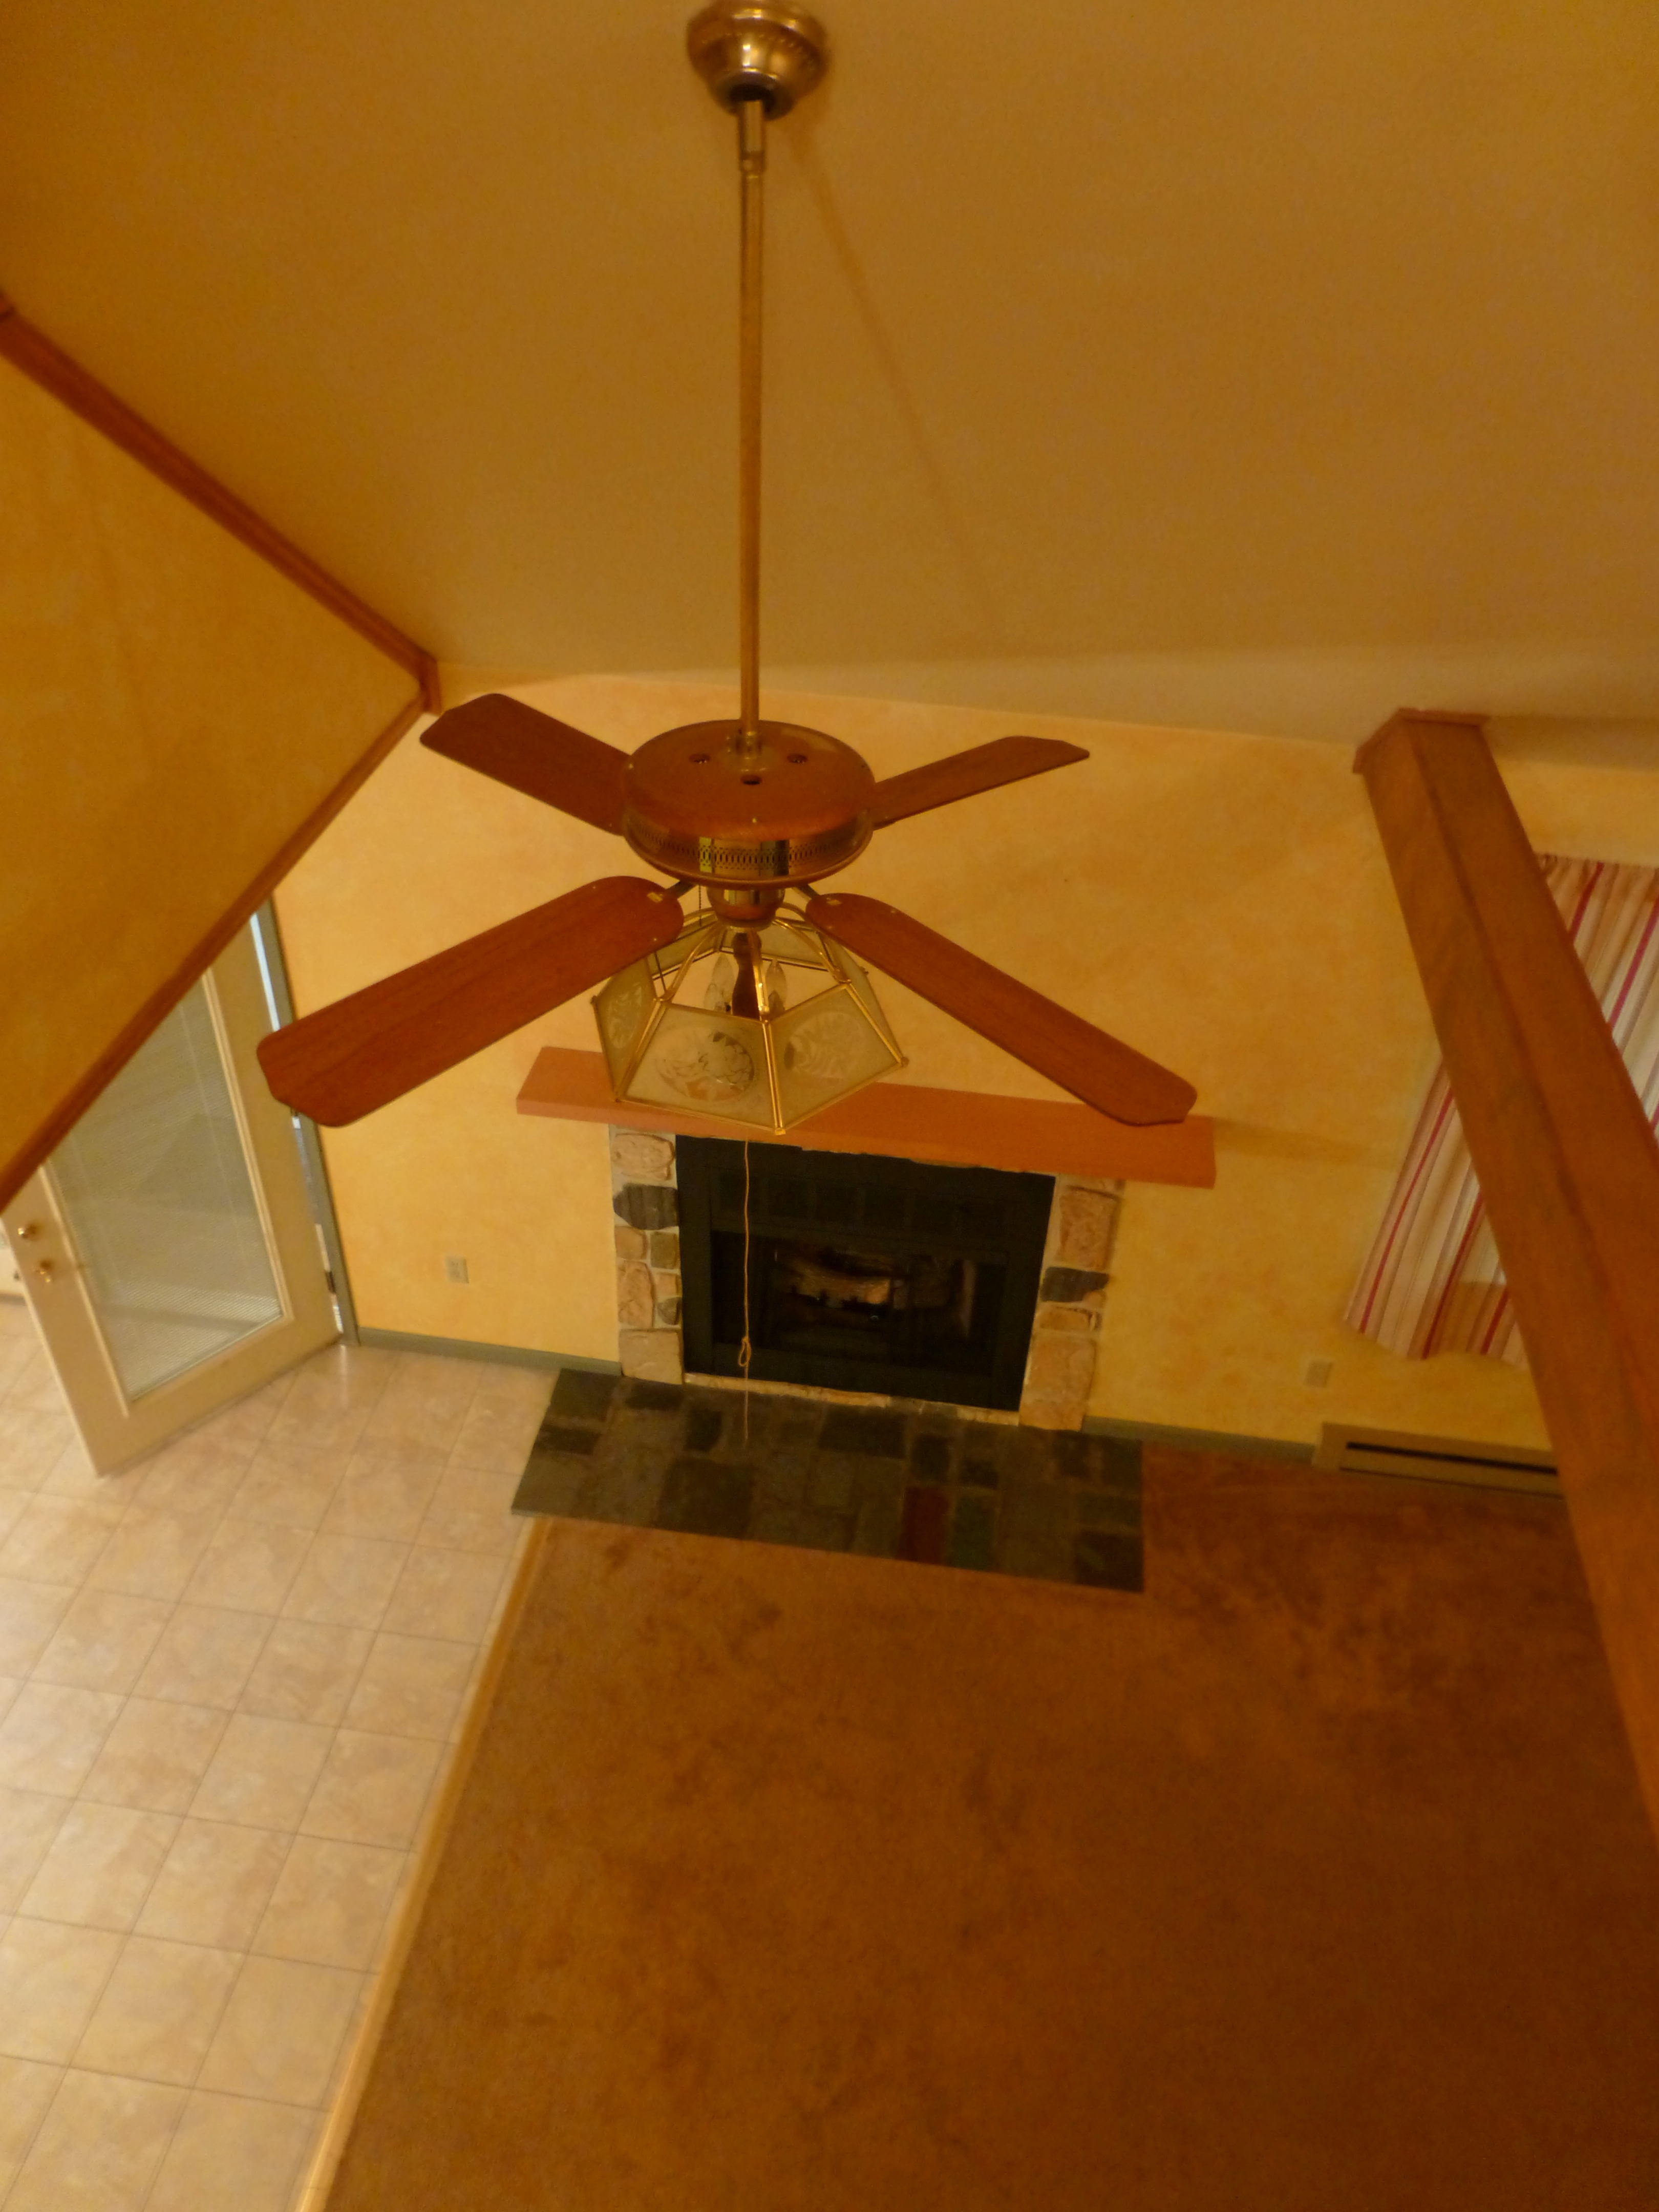 In Addition, It Provides General Lighting For The Main Living Area.  Unfortunately, The Style Of Light Fixture On This Old Ceiling Fan ...